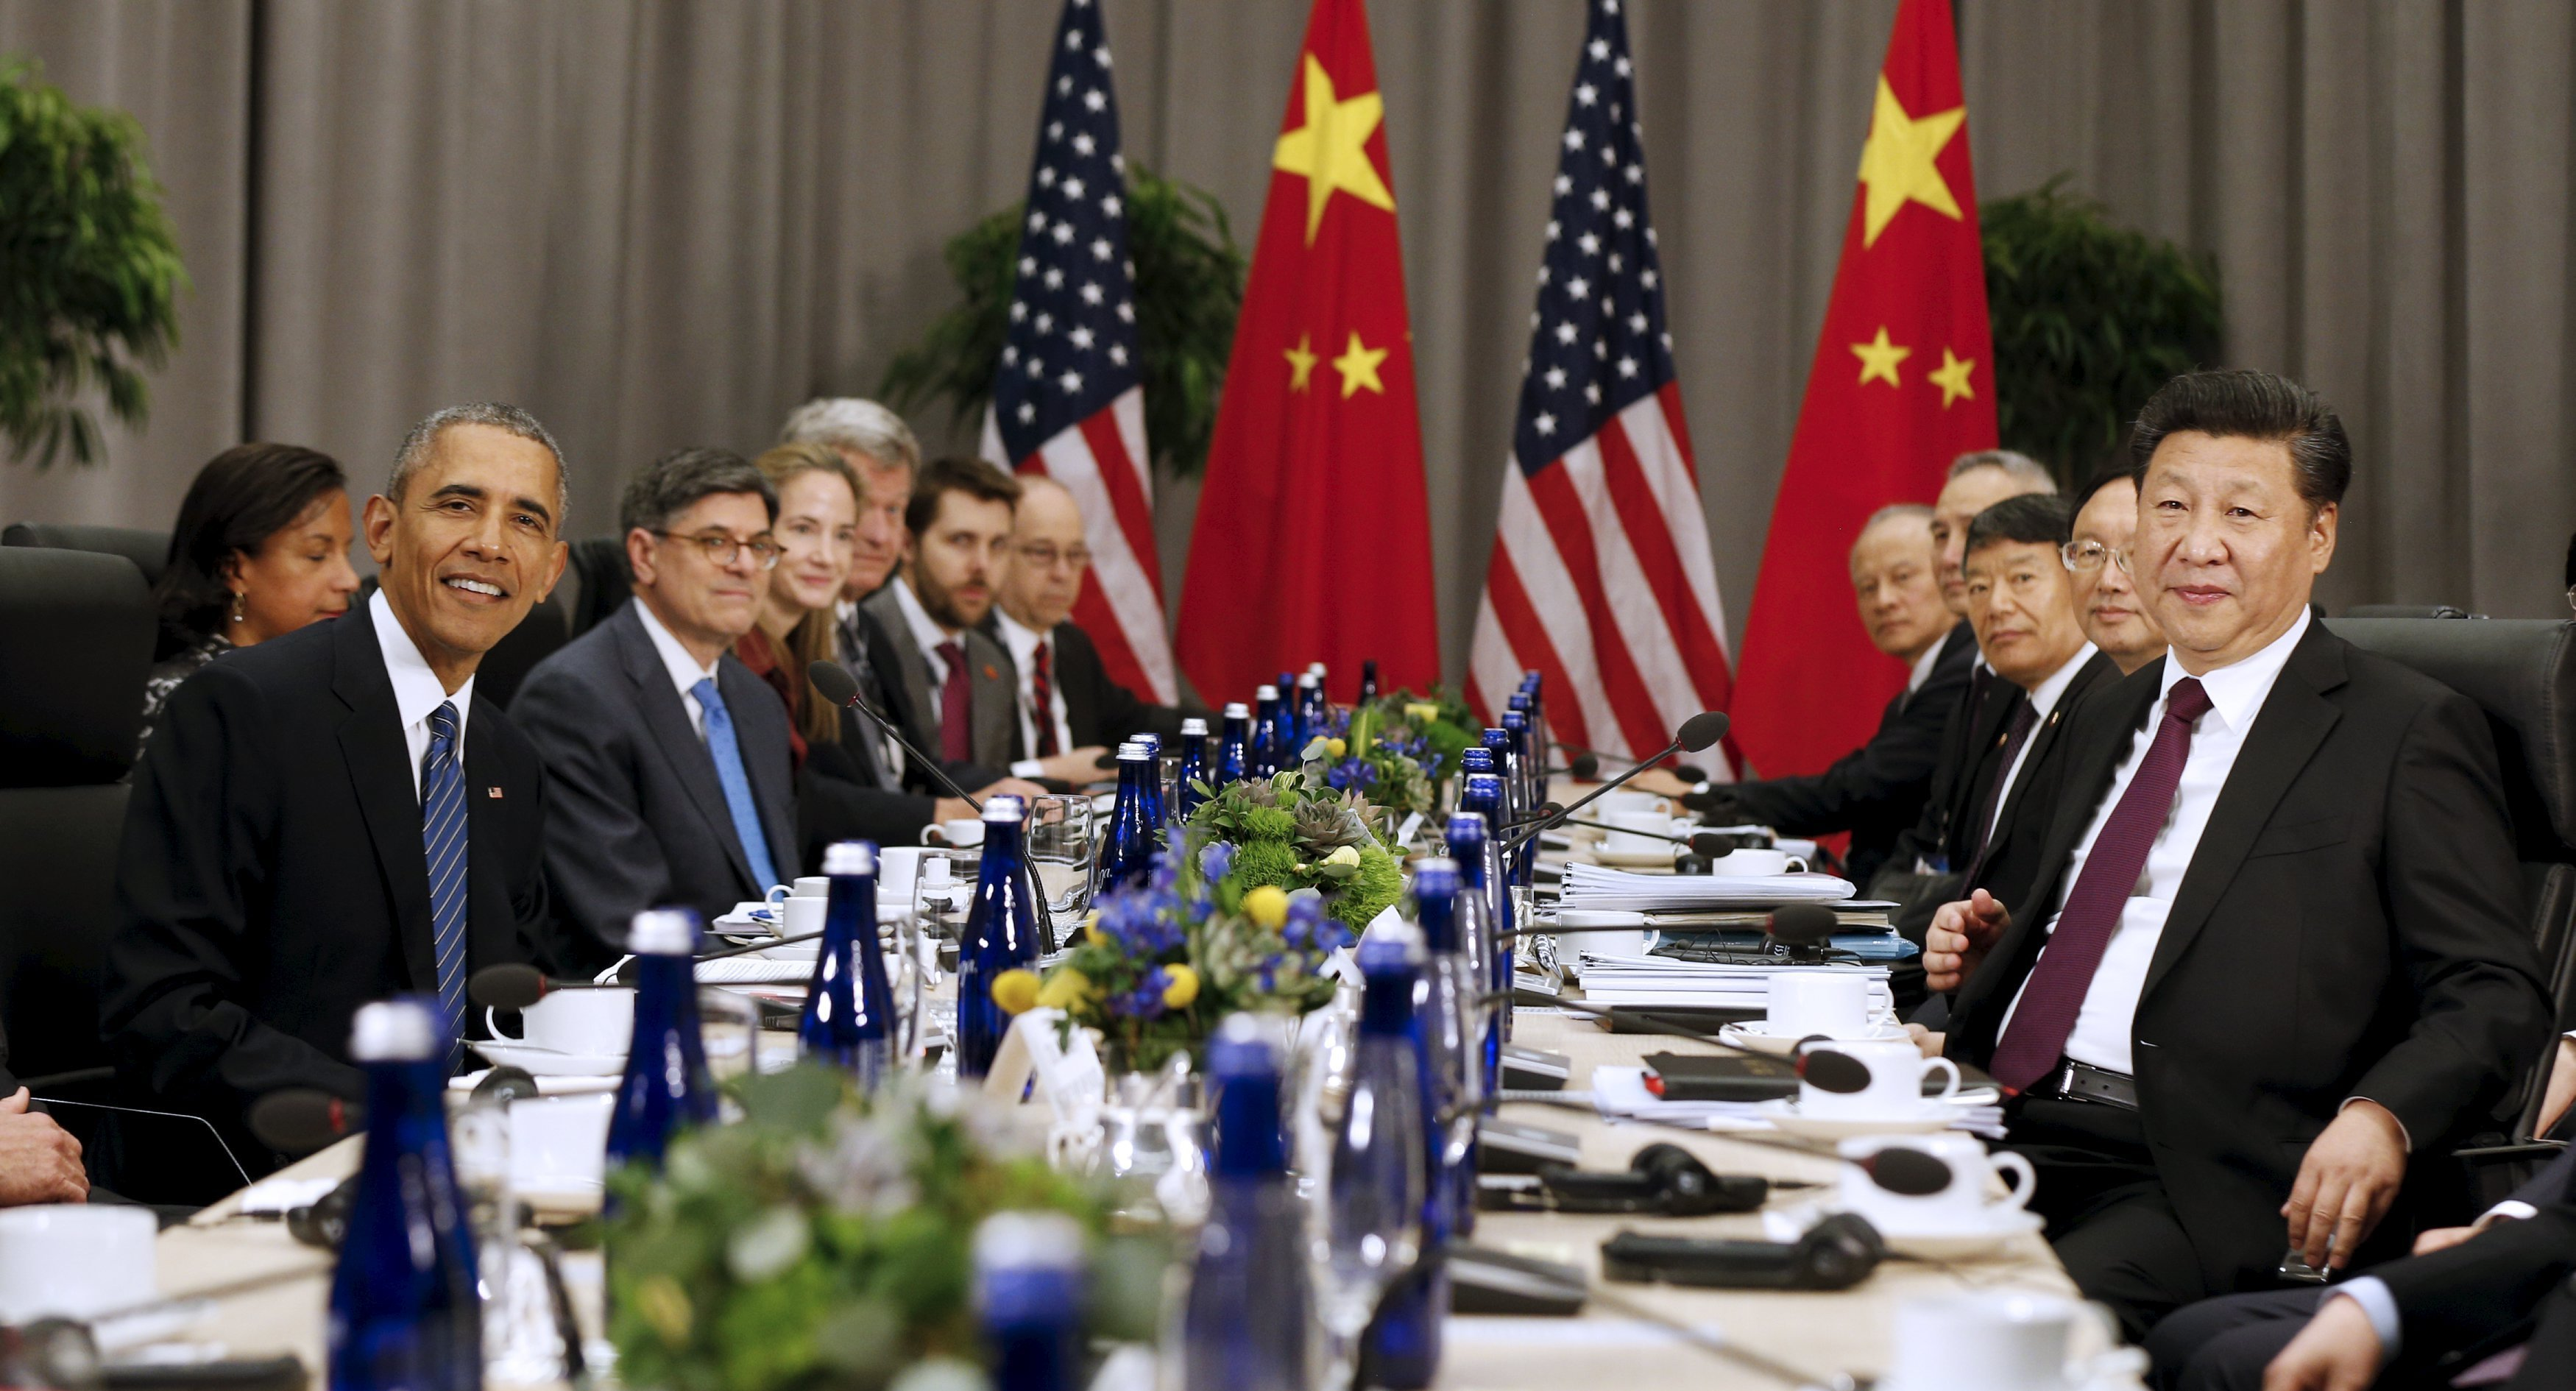 U.S. President Barack Obama (L) meets with Chinese President Xi Jinping (R) at the Nuclear Security Summit in Washington March 31, 2016